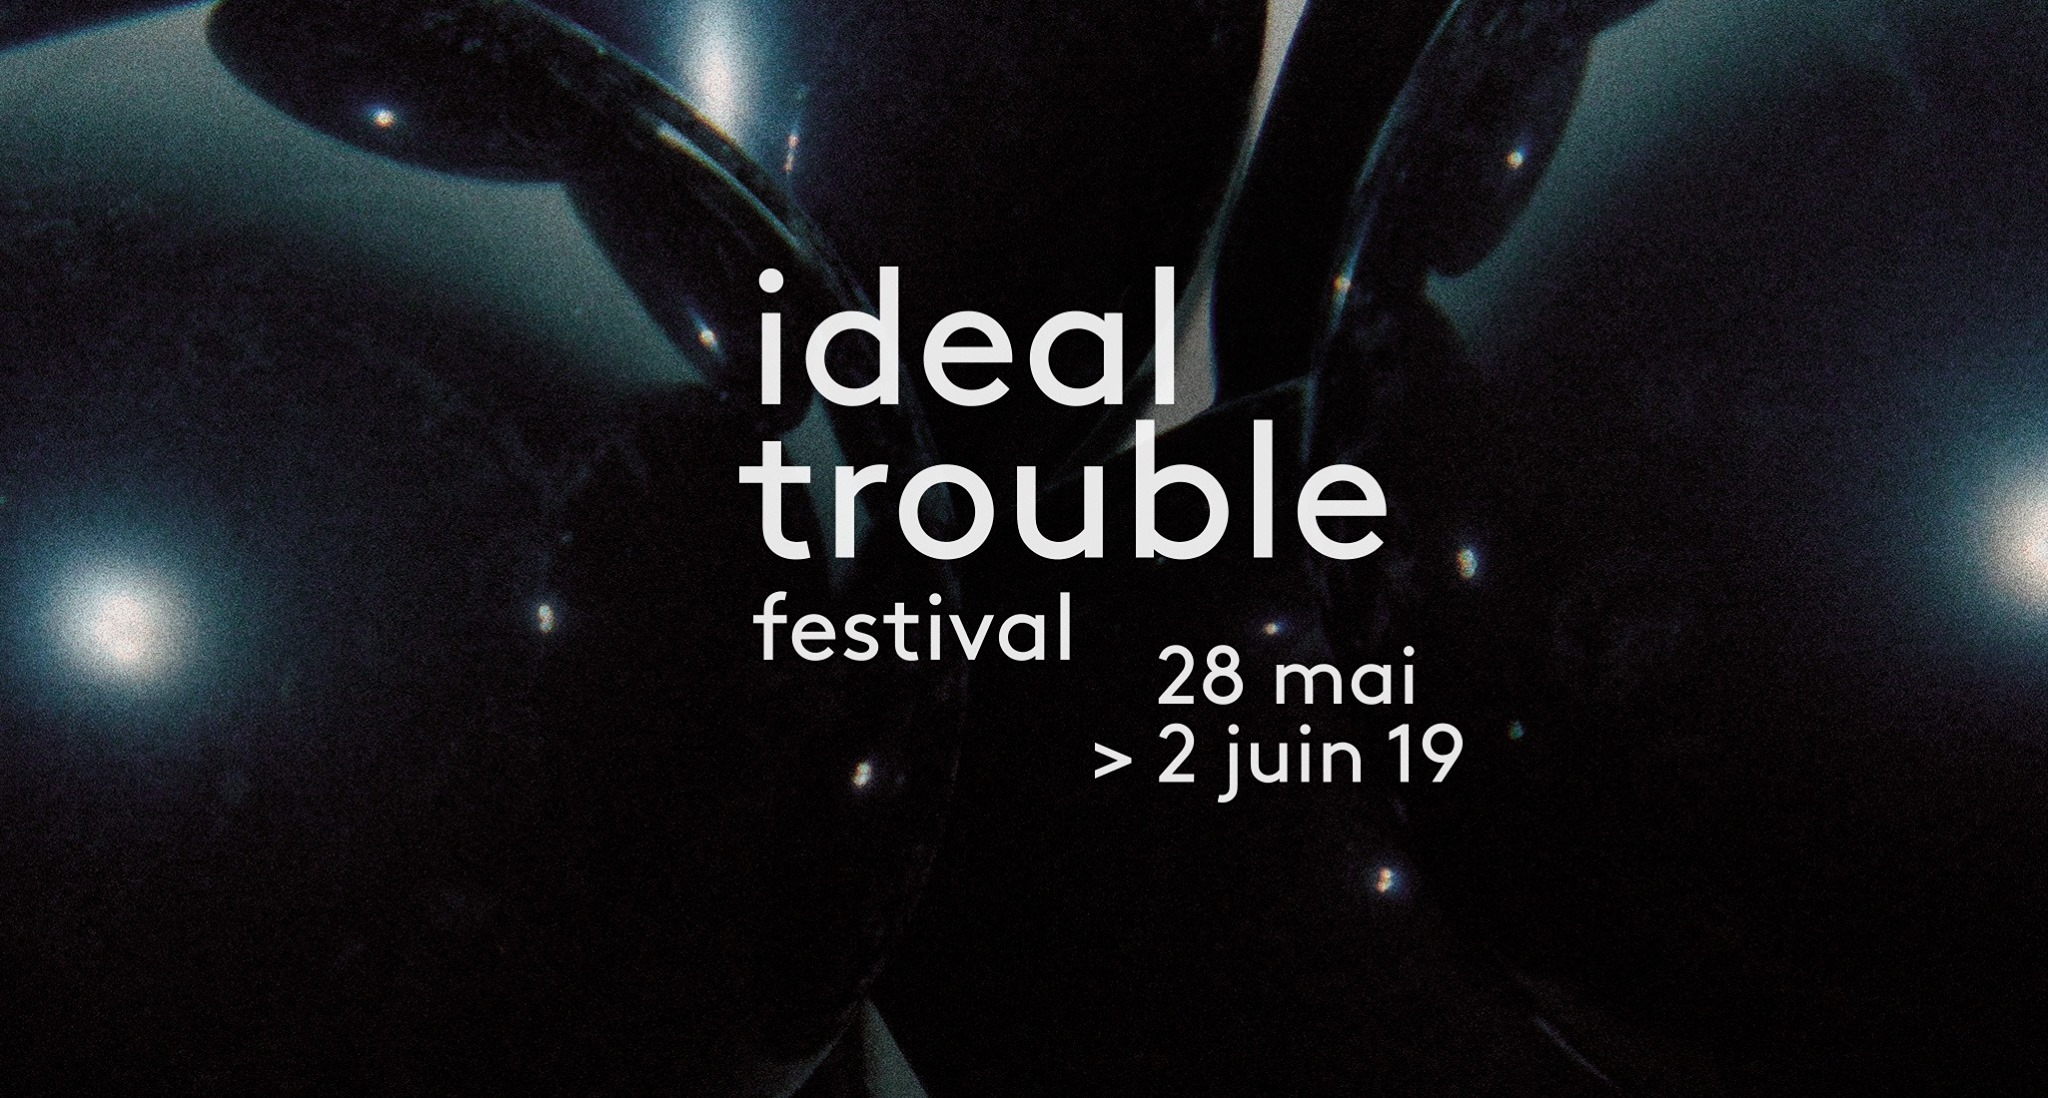 ideal-trouble-2-28-mai-2-juin.jpg